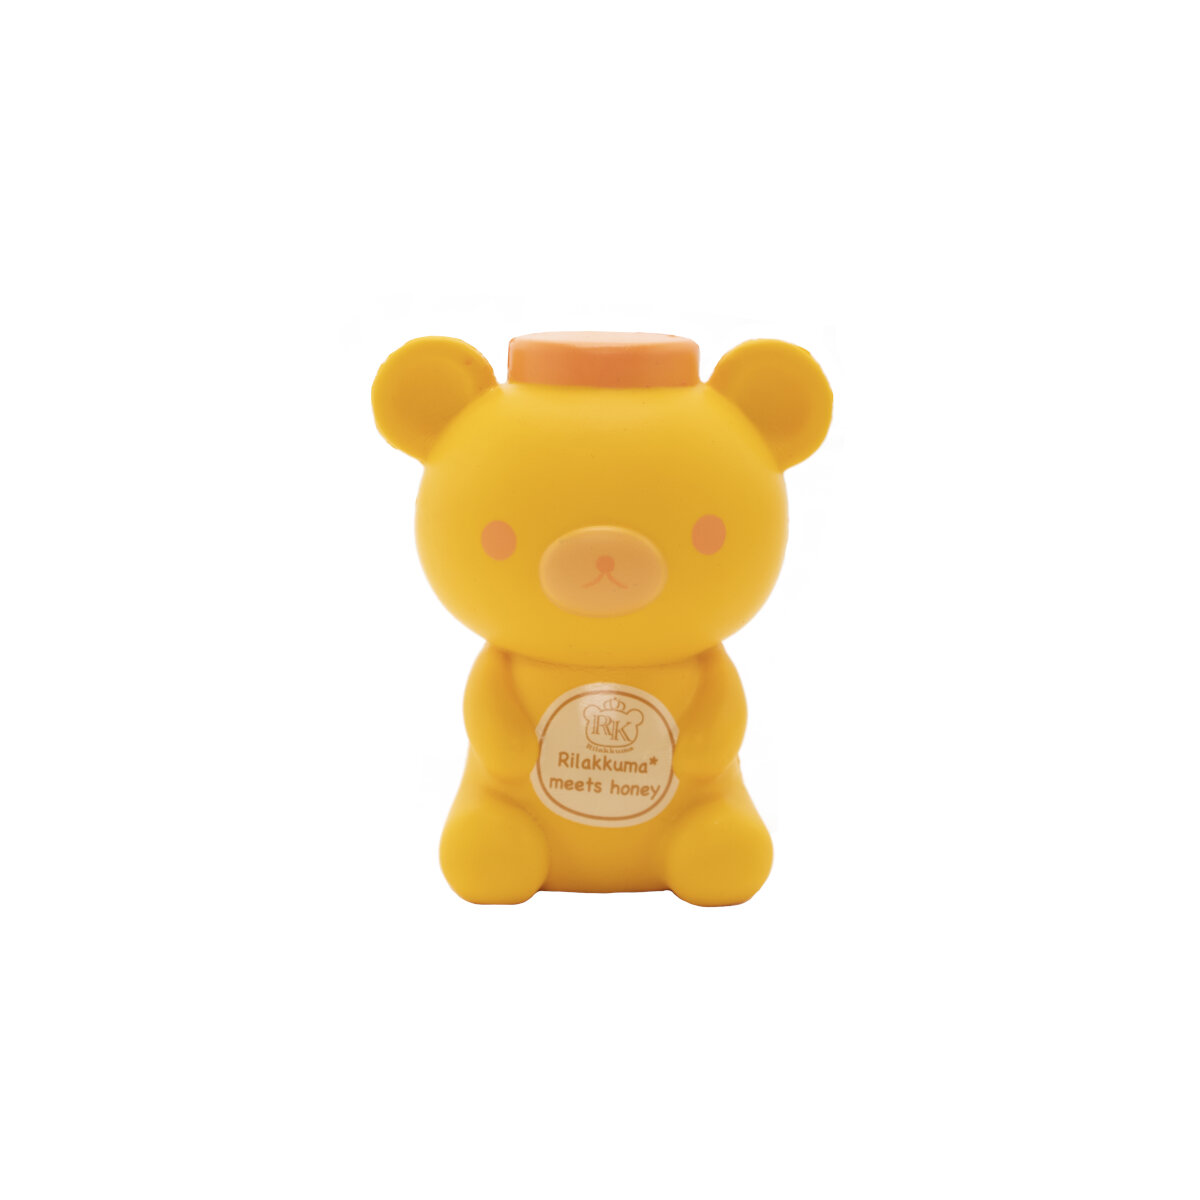 Squishy-Rilakkuma-Honey-Jar-Plush-First-Alternate-Image